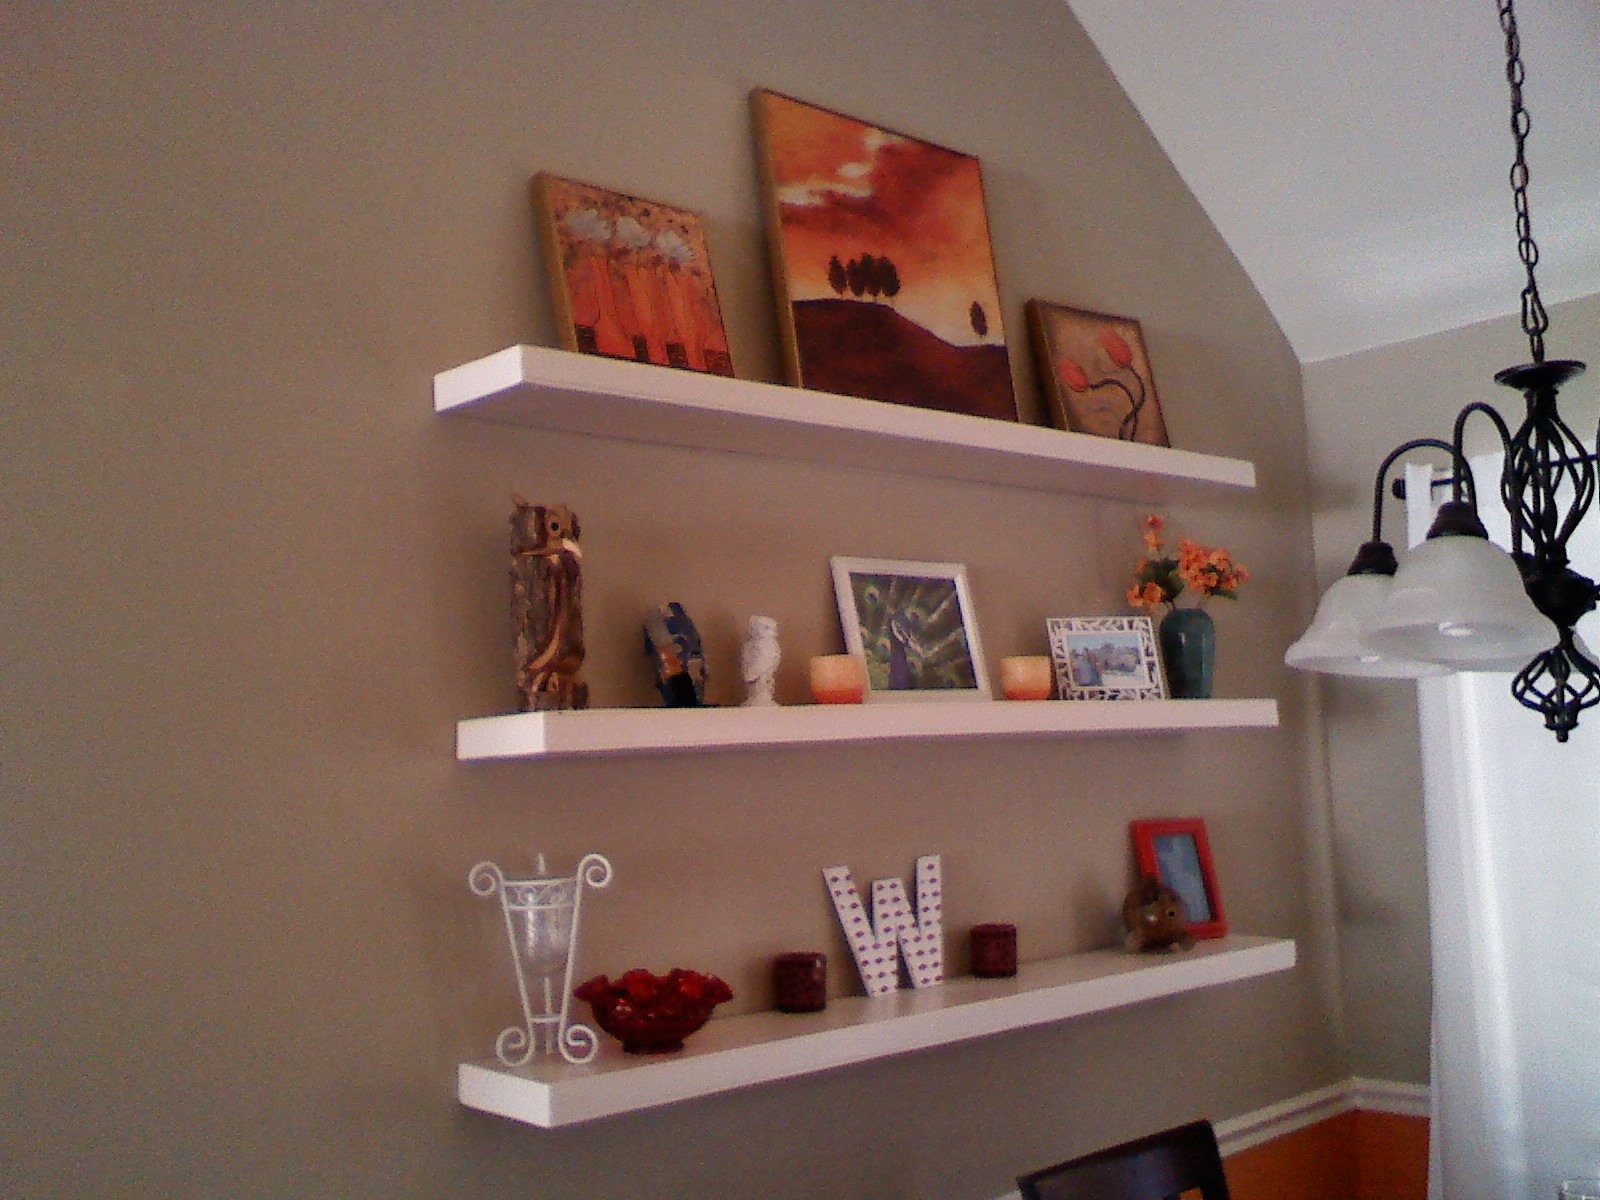 Best ideas about DIY Floating Wall Shelves . Save or Pin Workman Witticisms DIY Floating Shelves Now.